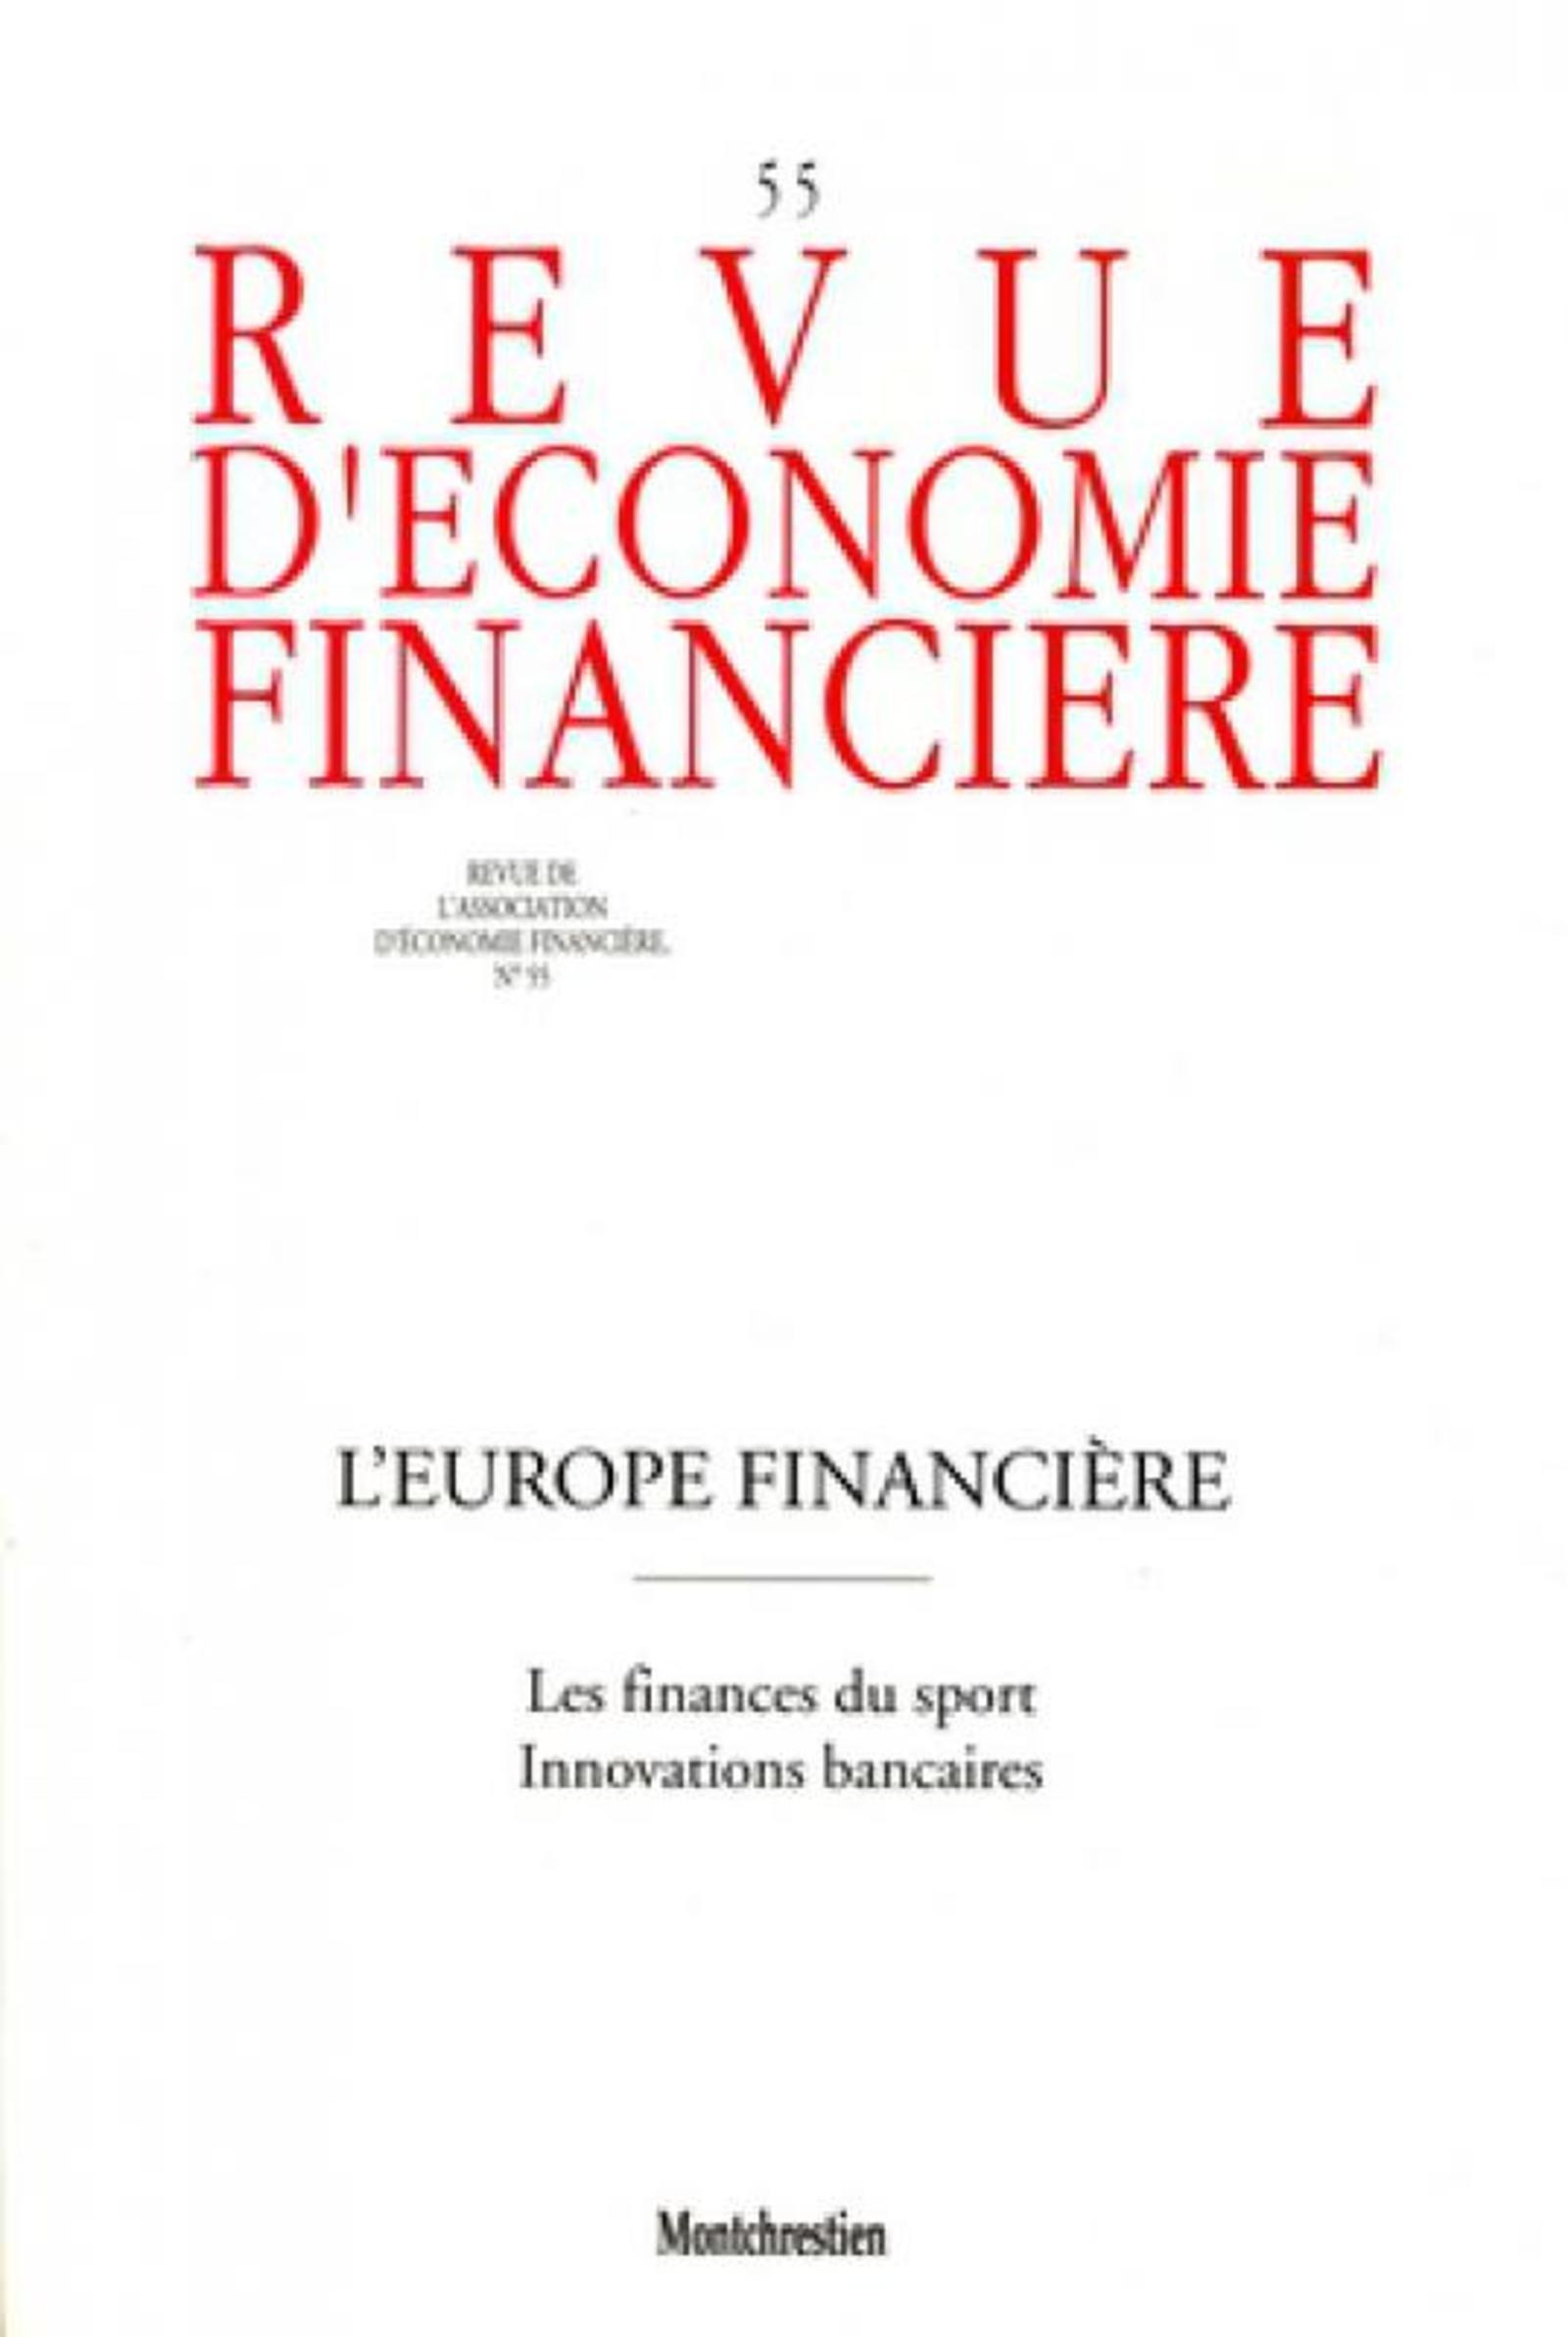 L'EUROPE FINANCIERE - N  55. LES FINANCES DU SPORT. INNOVATIONS BANCAIRES